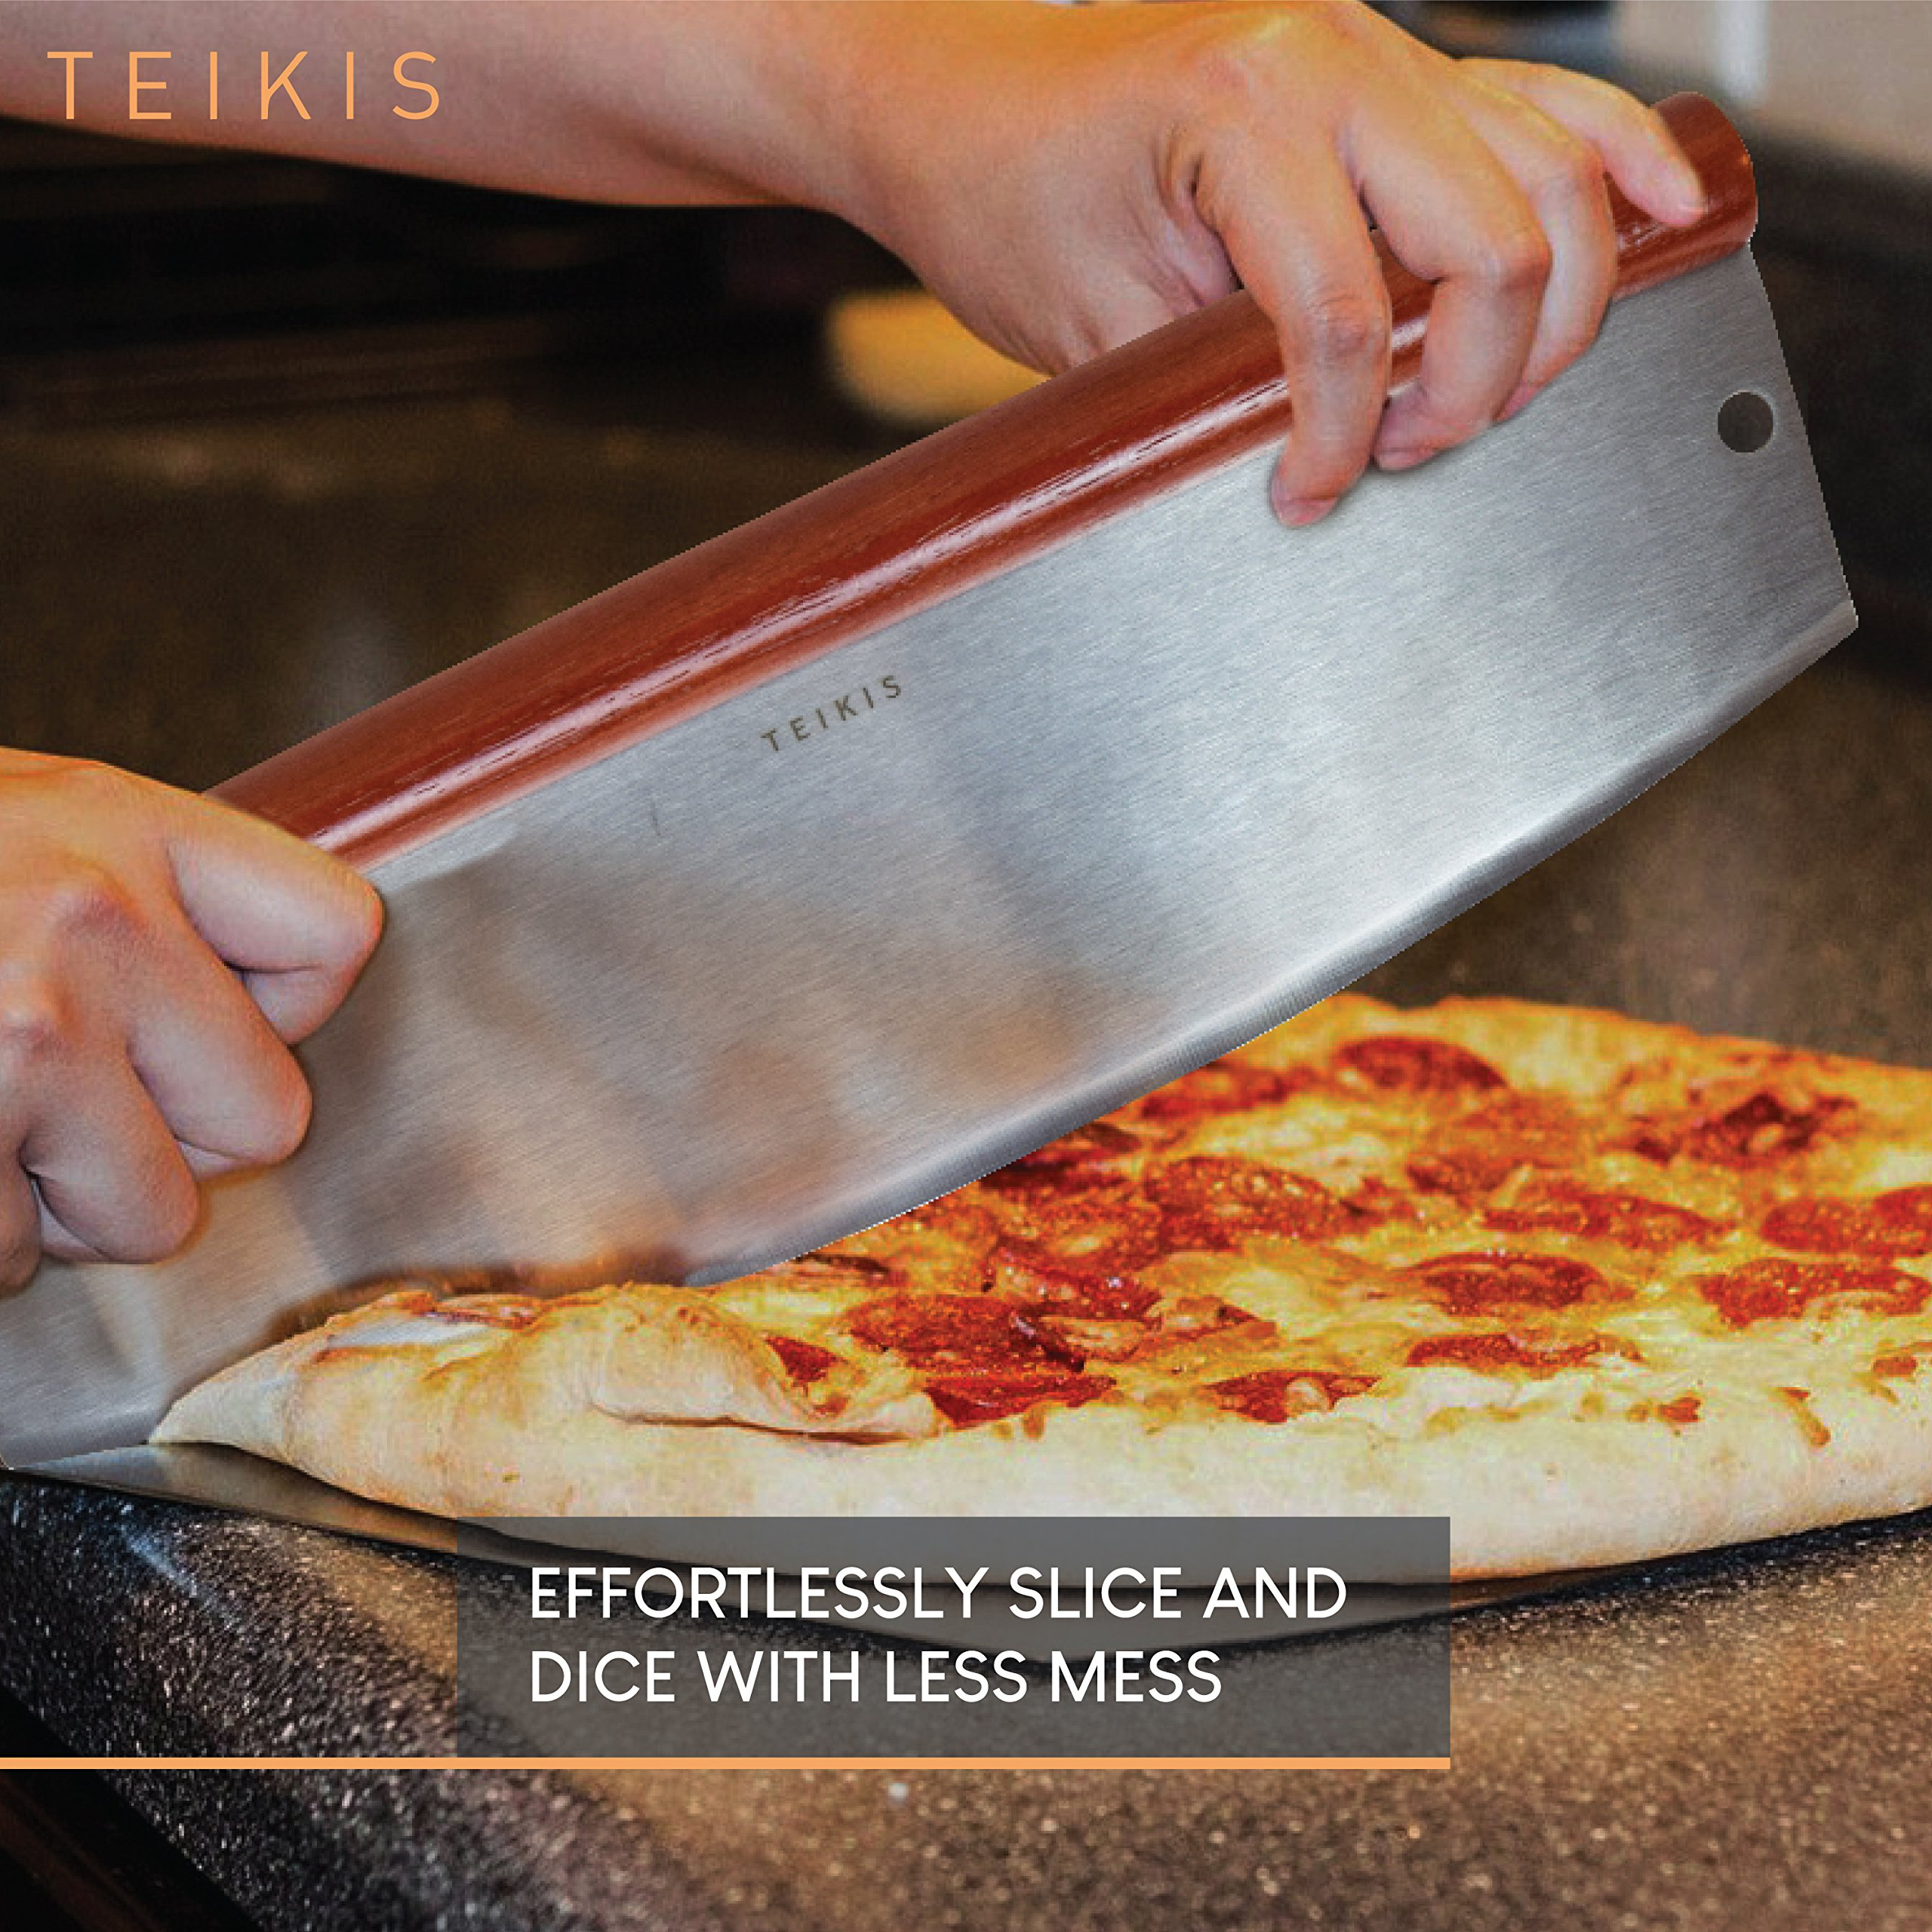 TeiKis Large 14-inch Pizza Cutter + Pizza Peel Paddle Board Set (14-inch x 16-inch) with Wood Handle by TeiKis (Image #7)